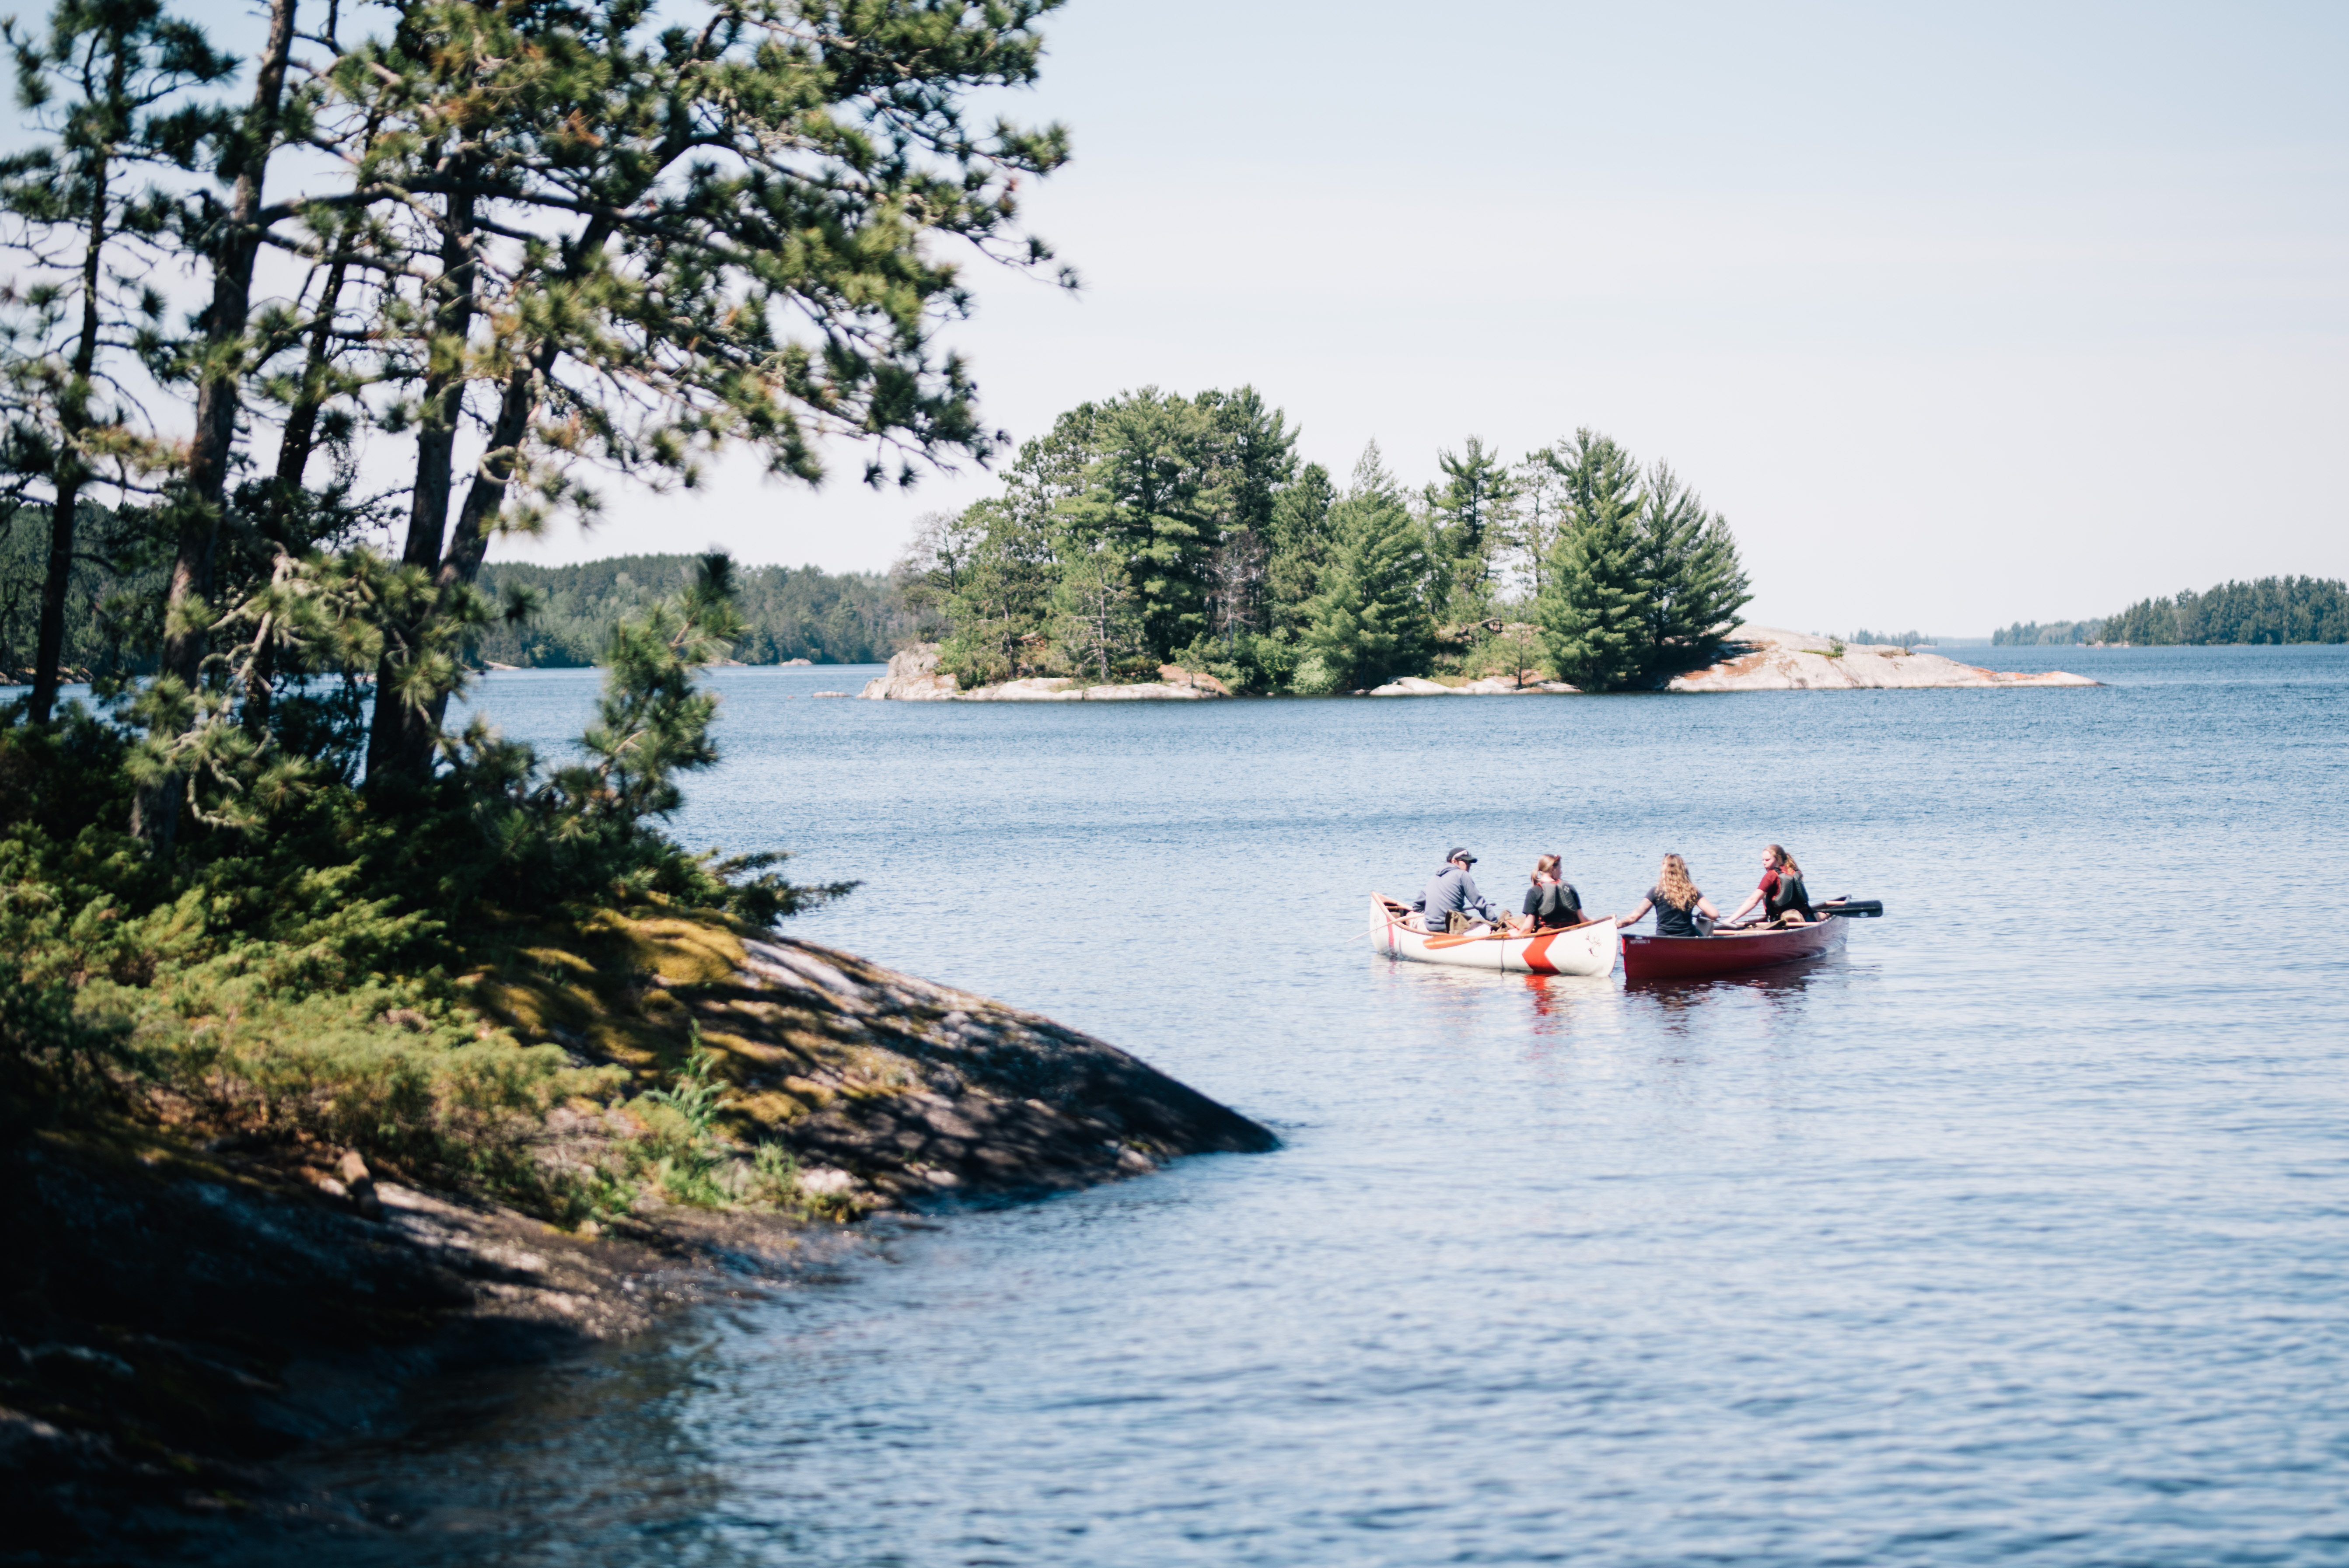 Anything But Basic: The Top 5 Experiences in Voyageurs National Park